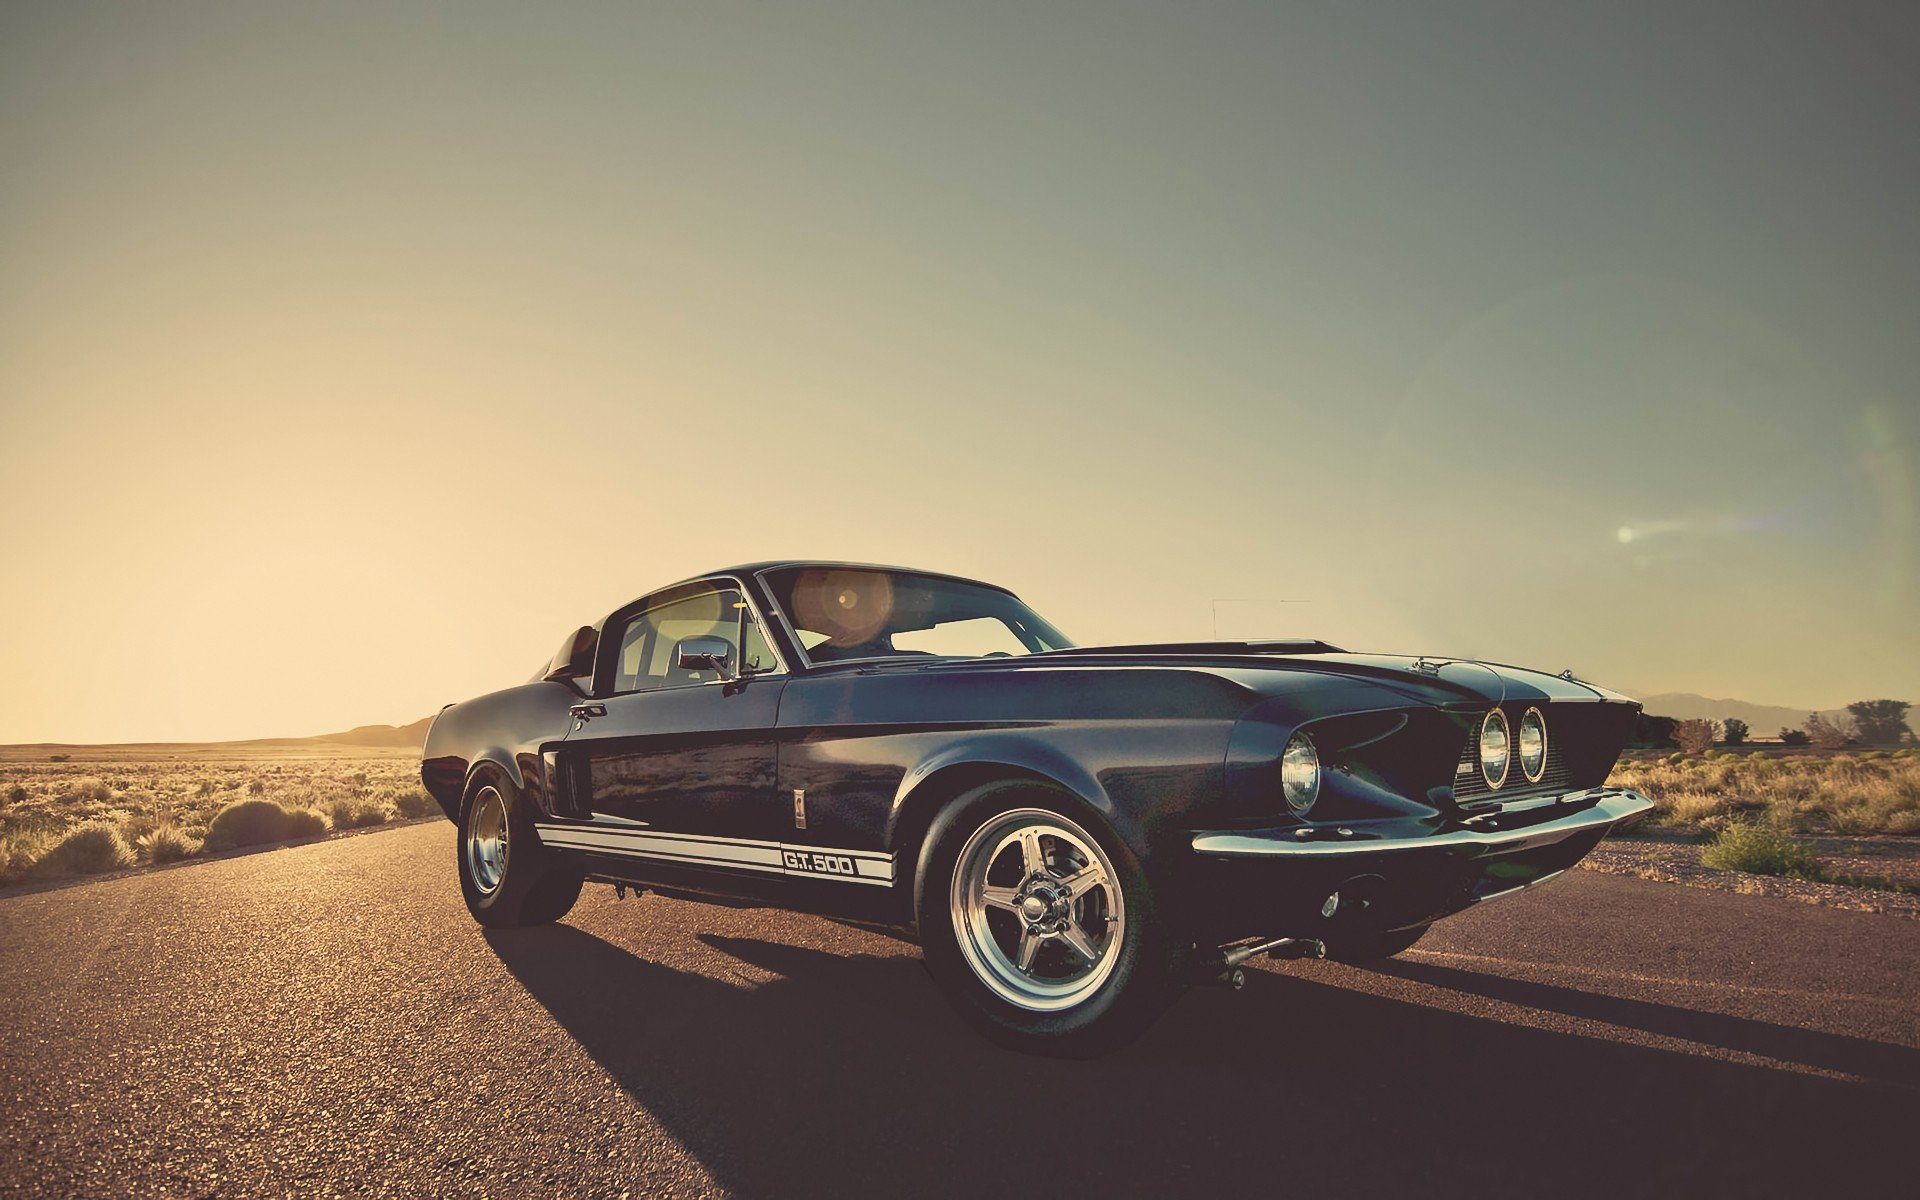 Mac Imac Cars Wallpapers Desktop Backgrounds Hd Pictures And 1920x1200